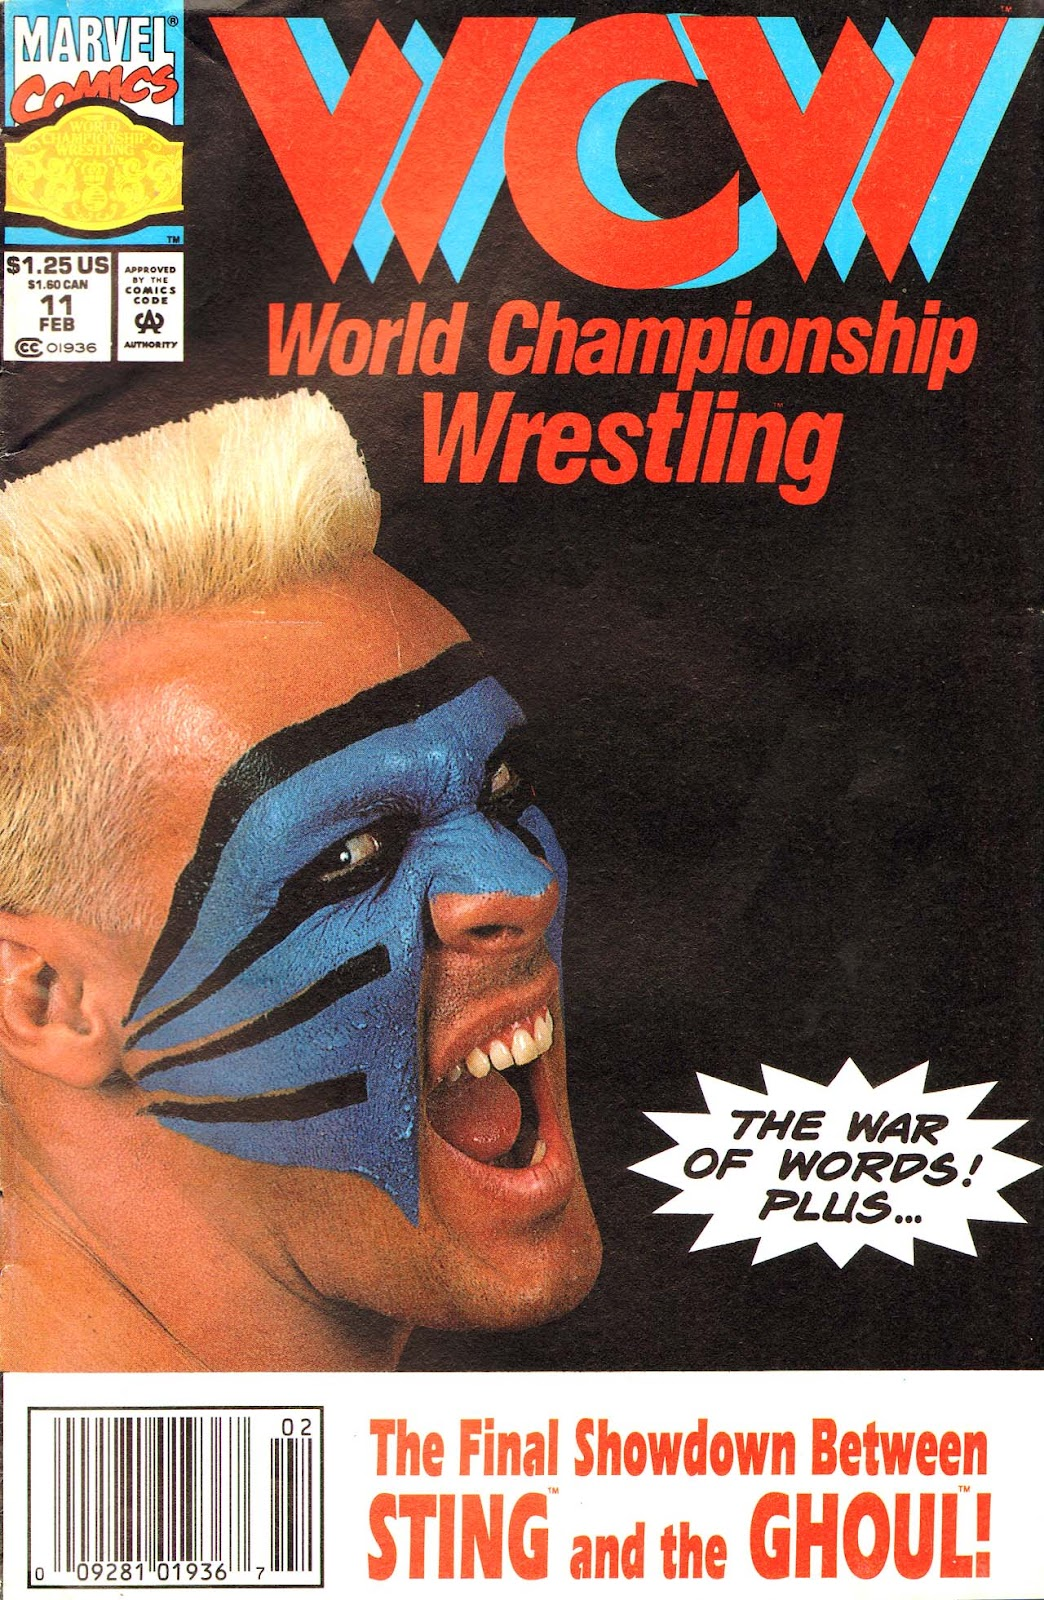 WCW World Championship Wrestling 11 Page 1